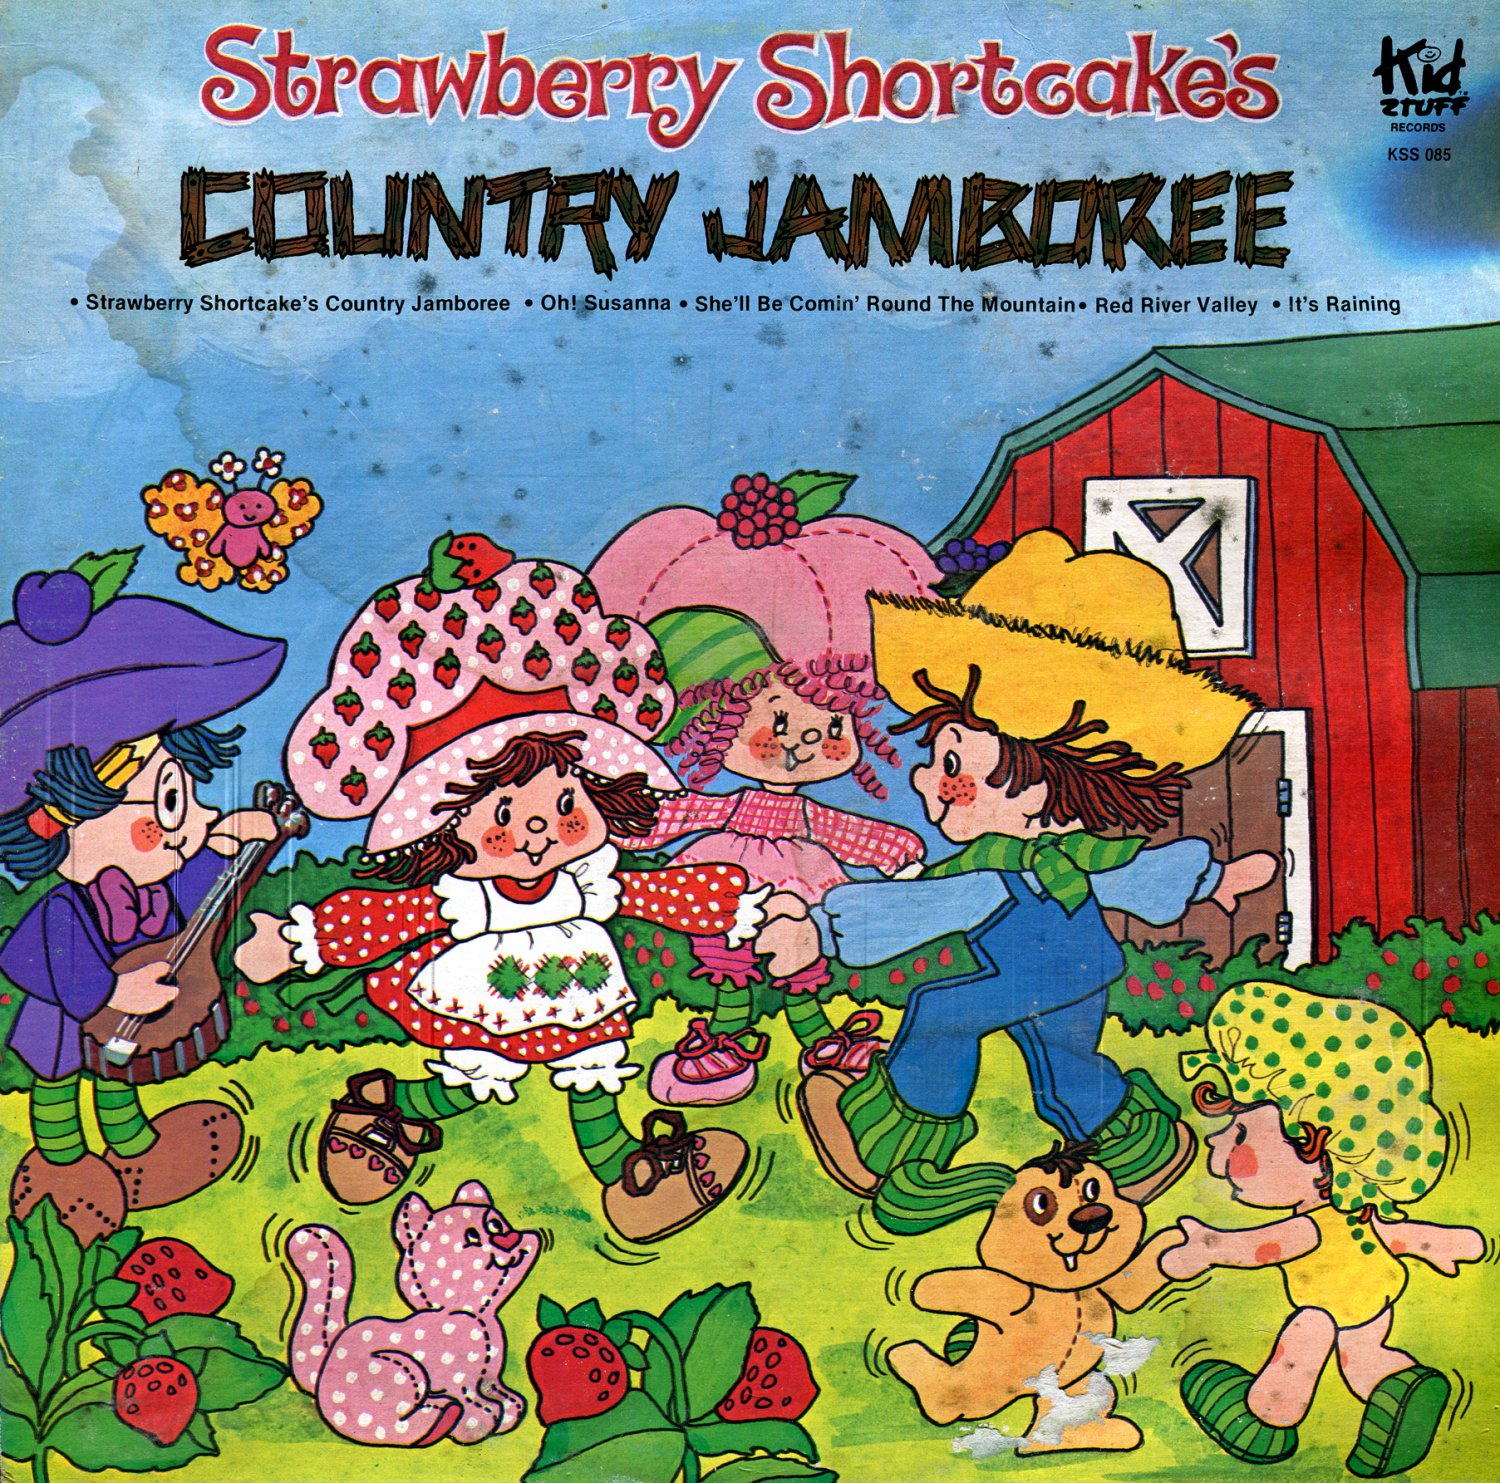 Strawberry Shortcake's Country Jamboree - Music Collection LP/CD